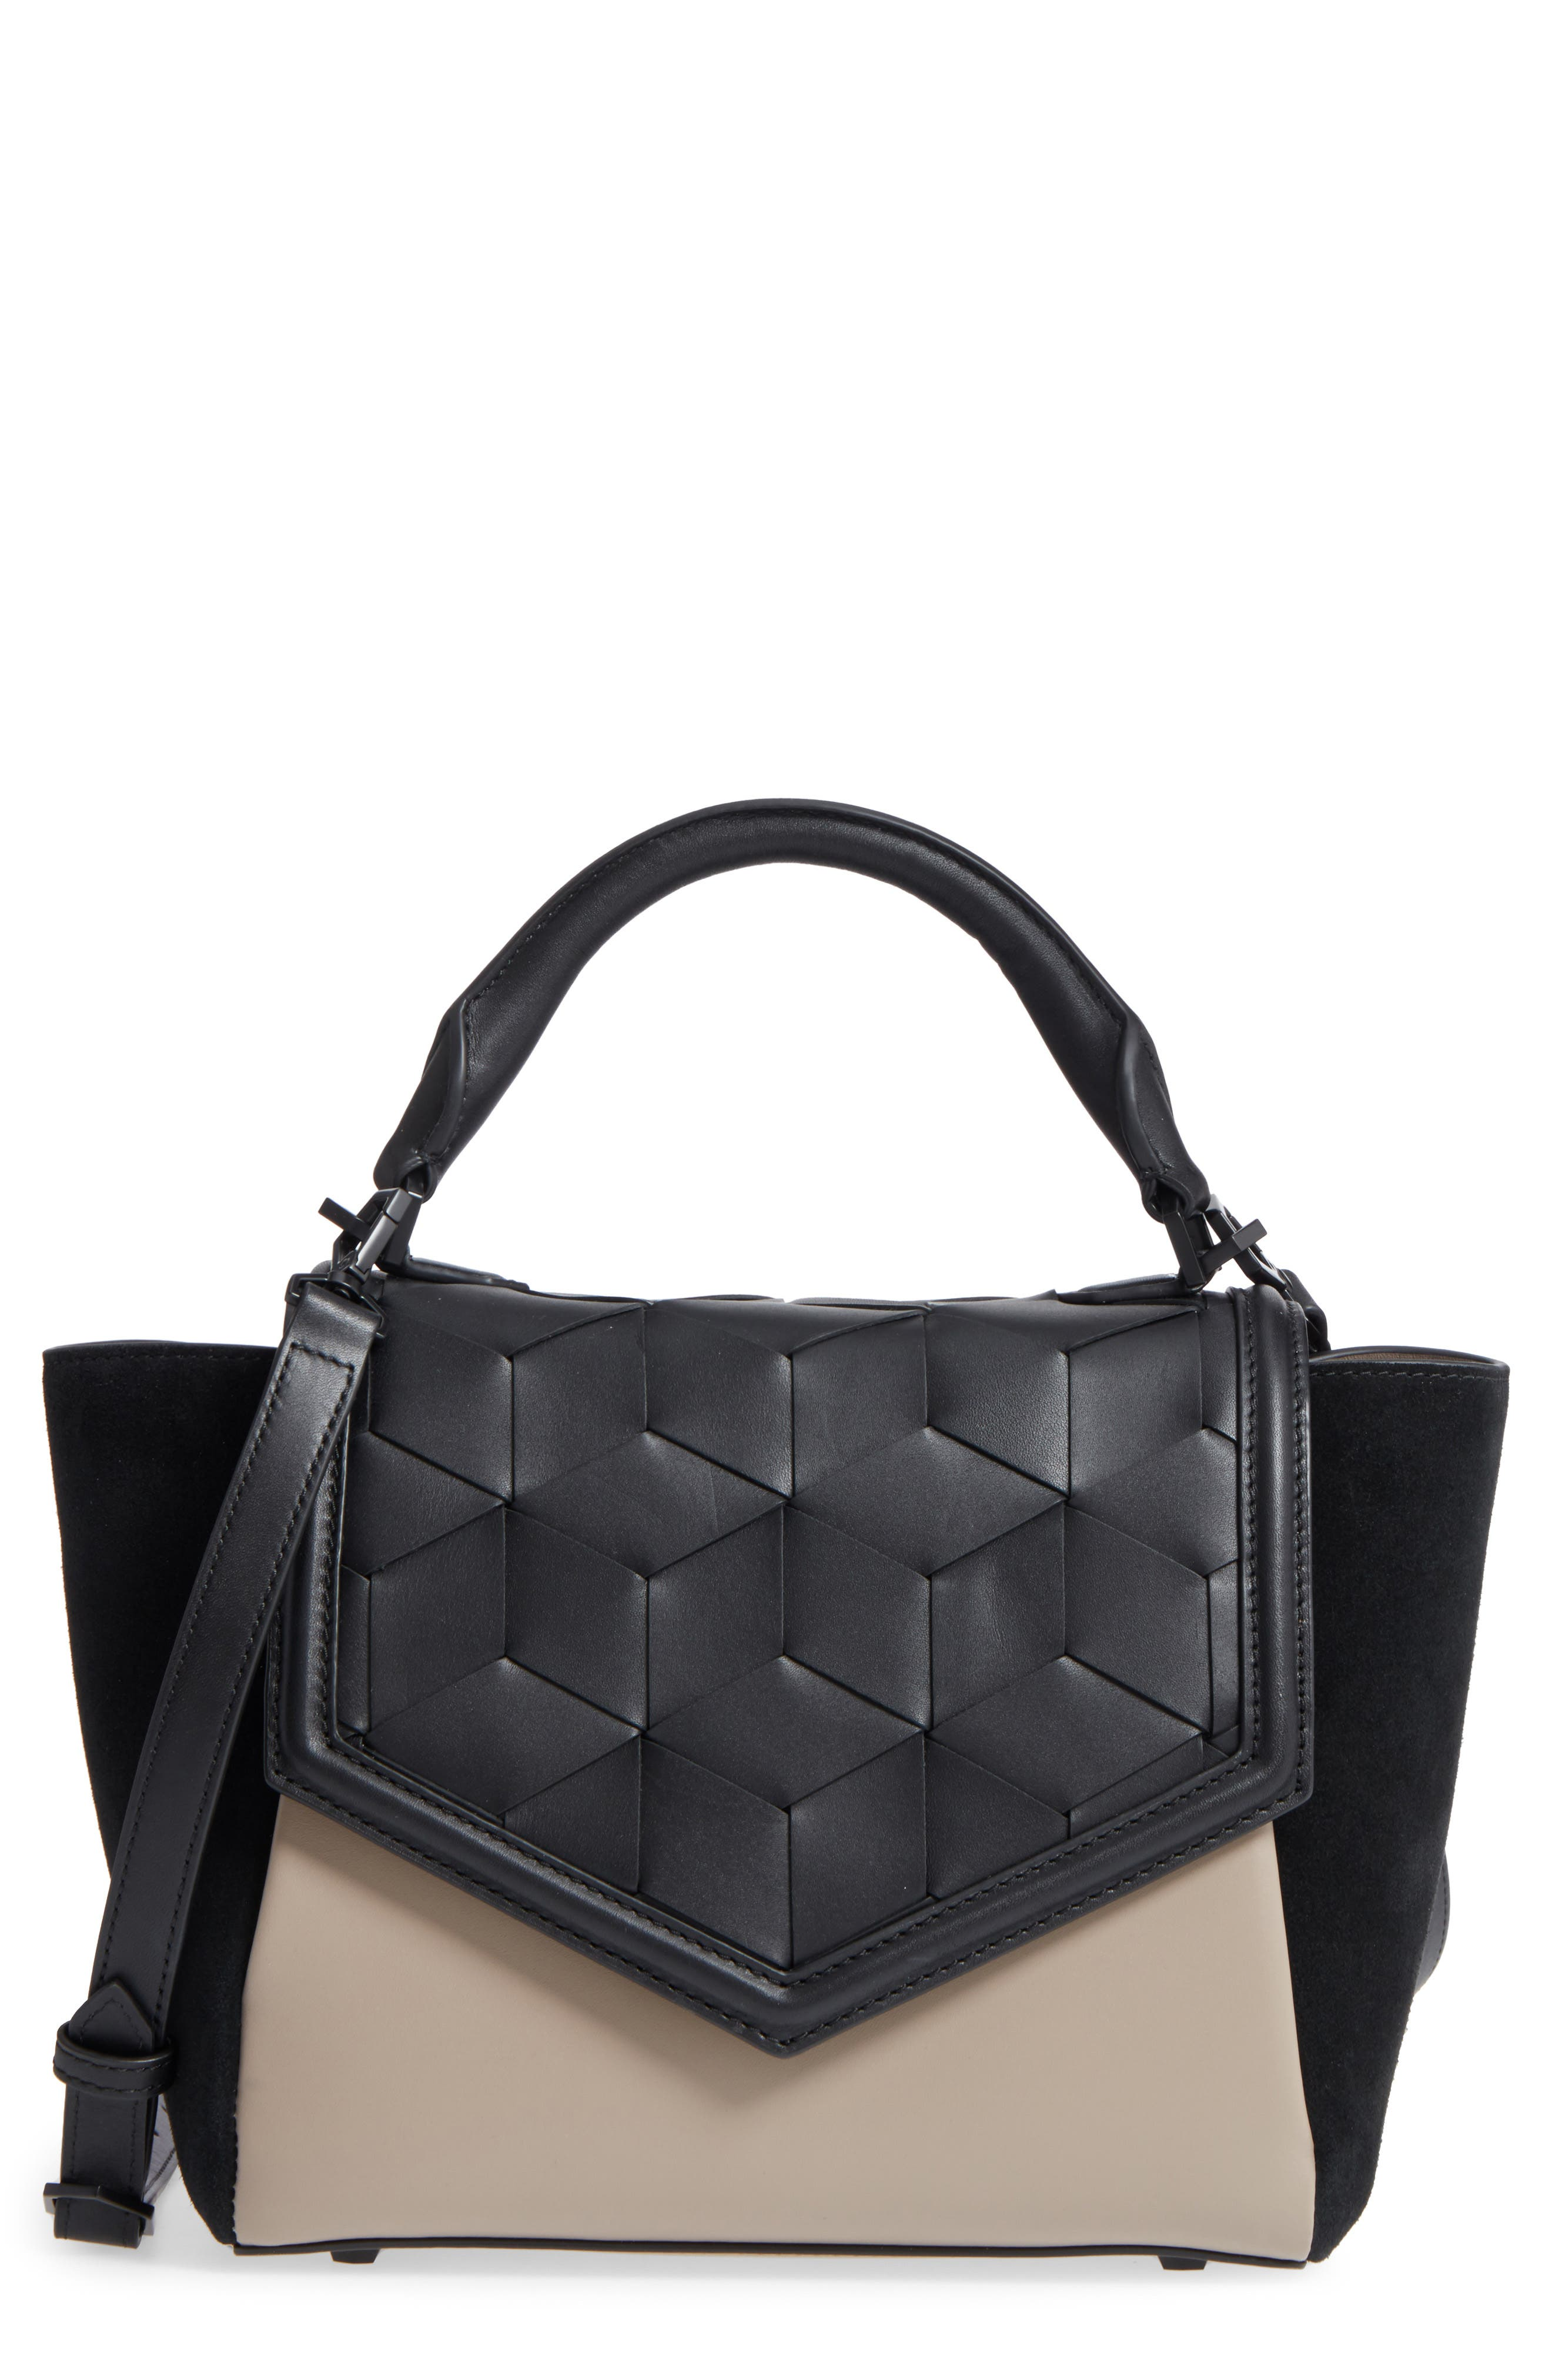 Small Saunter Colorblocked Leather & Suede Top Handle Satchel,                             Main thumbnail 1, color,                             Black/ Taupe